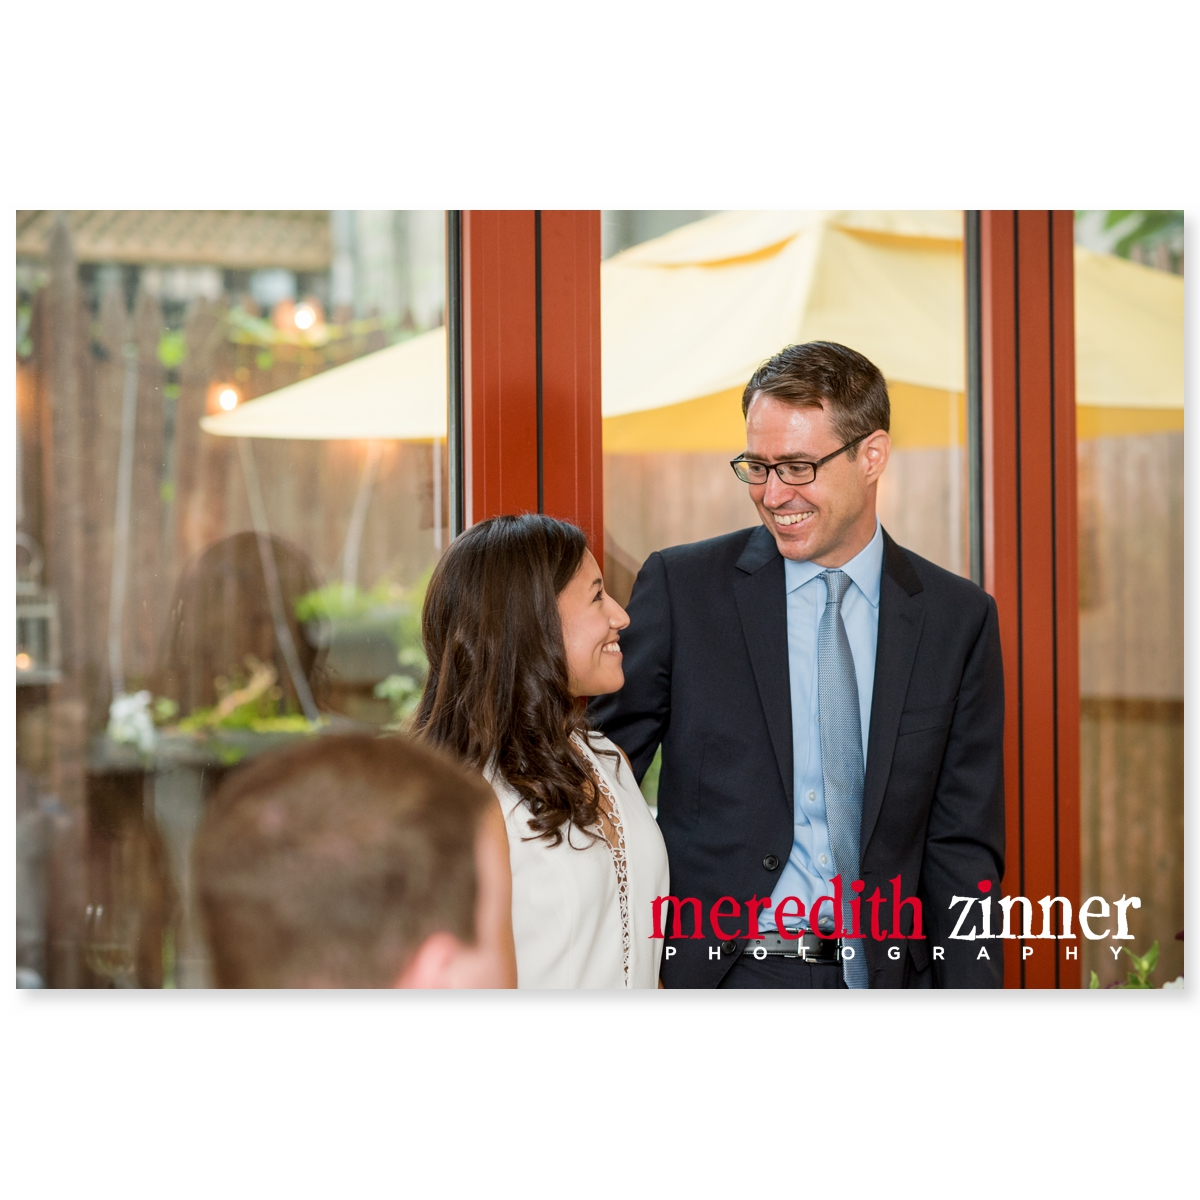 Meredith_Zinner_Photography_StilesCelebration_0169